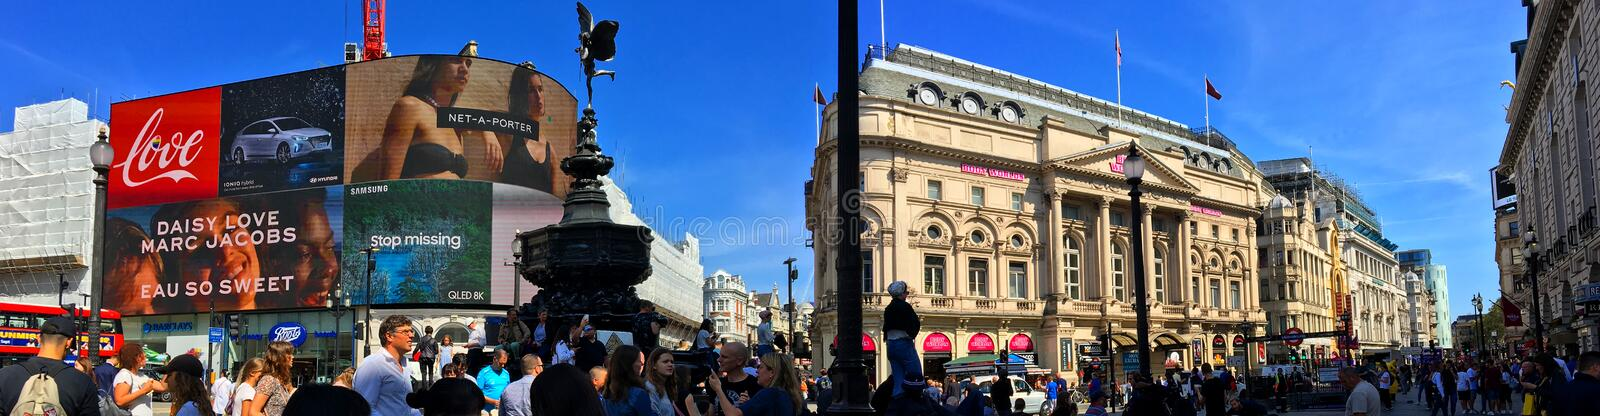 Piccadilly Circus an einem Sommertag stockfotos